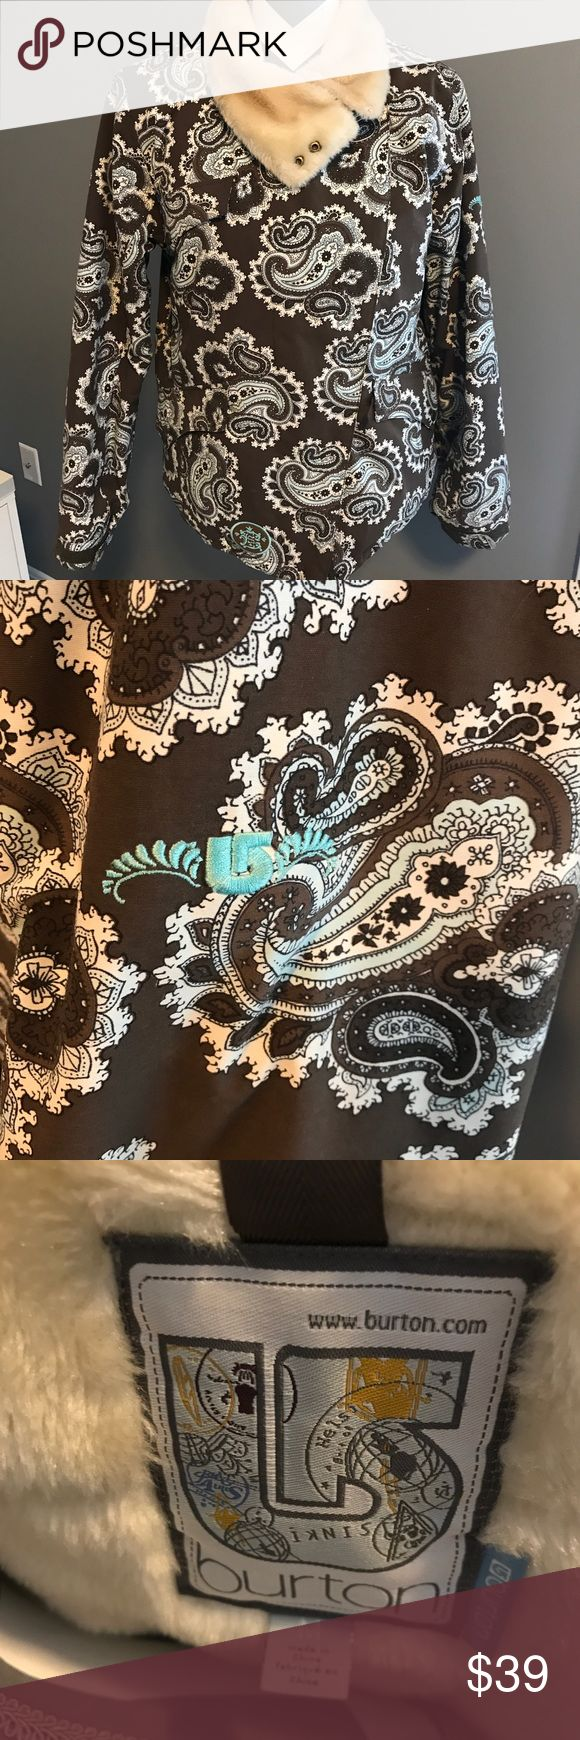 Burton ski coat Like new condition snow jacket. Brown in color with white paisley. Also has a plush collar. No attached hood  Size medium Has pockets each the zip close and also magnet close . Stylish cute jacket for the slopes or daily wear. Burton Jackets & Coats